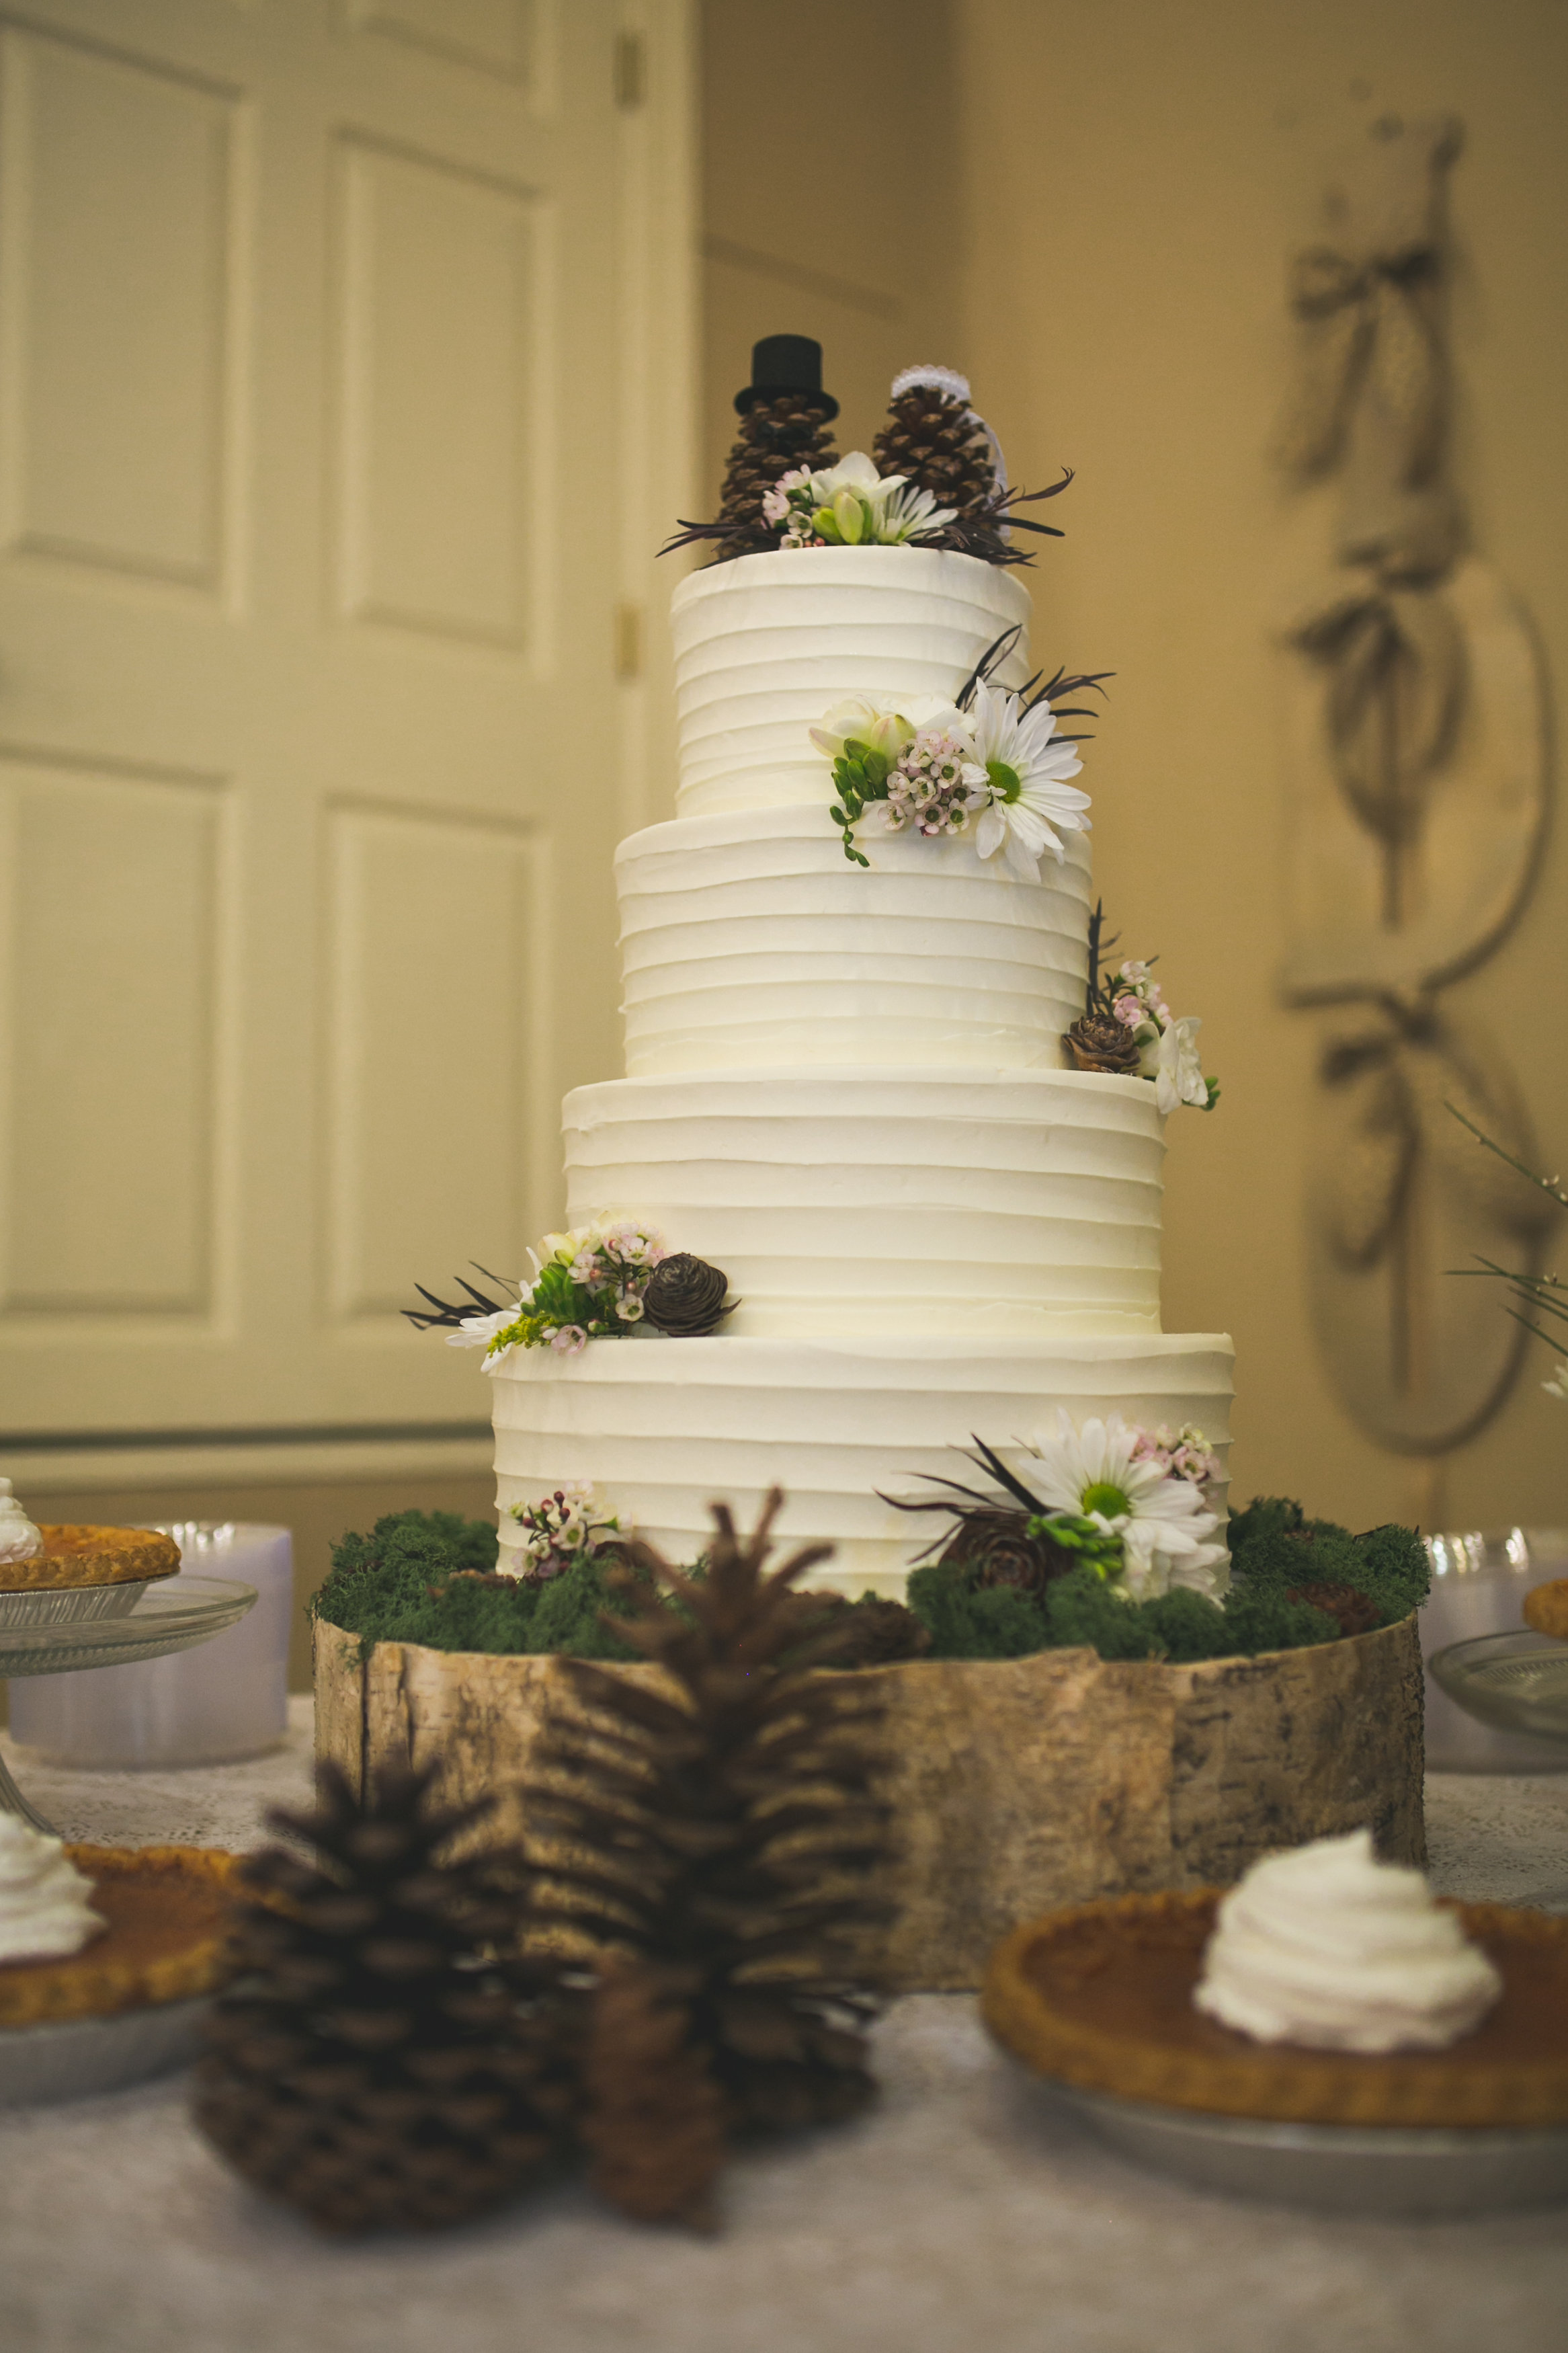 Austin Wedding Cakes | The Cake Plate & Austin Wedding Cakes | The Cake Plate Custom Wedding Bakery